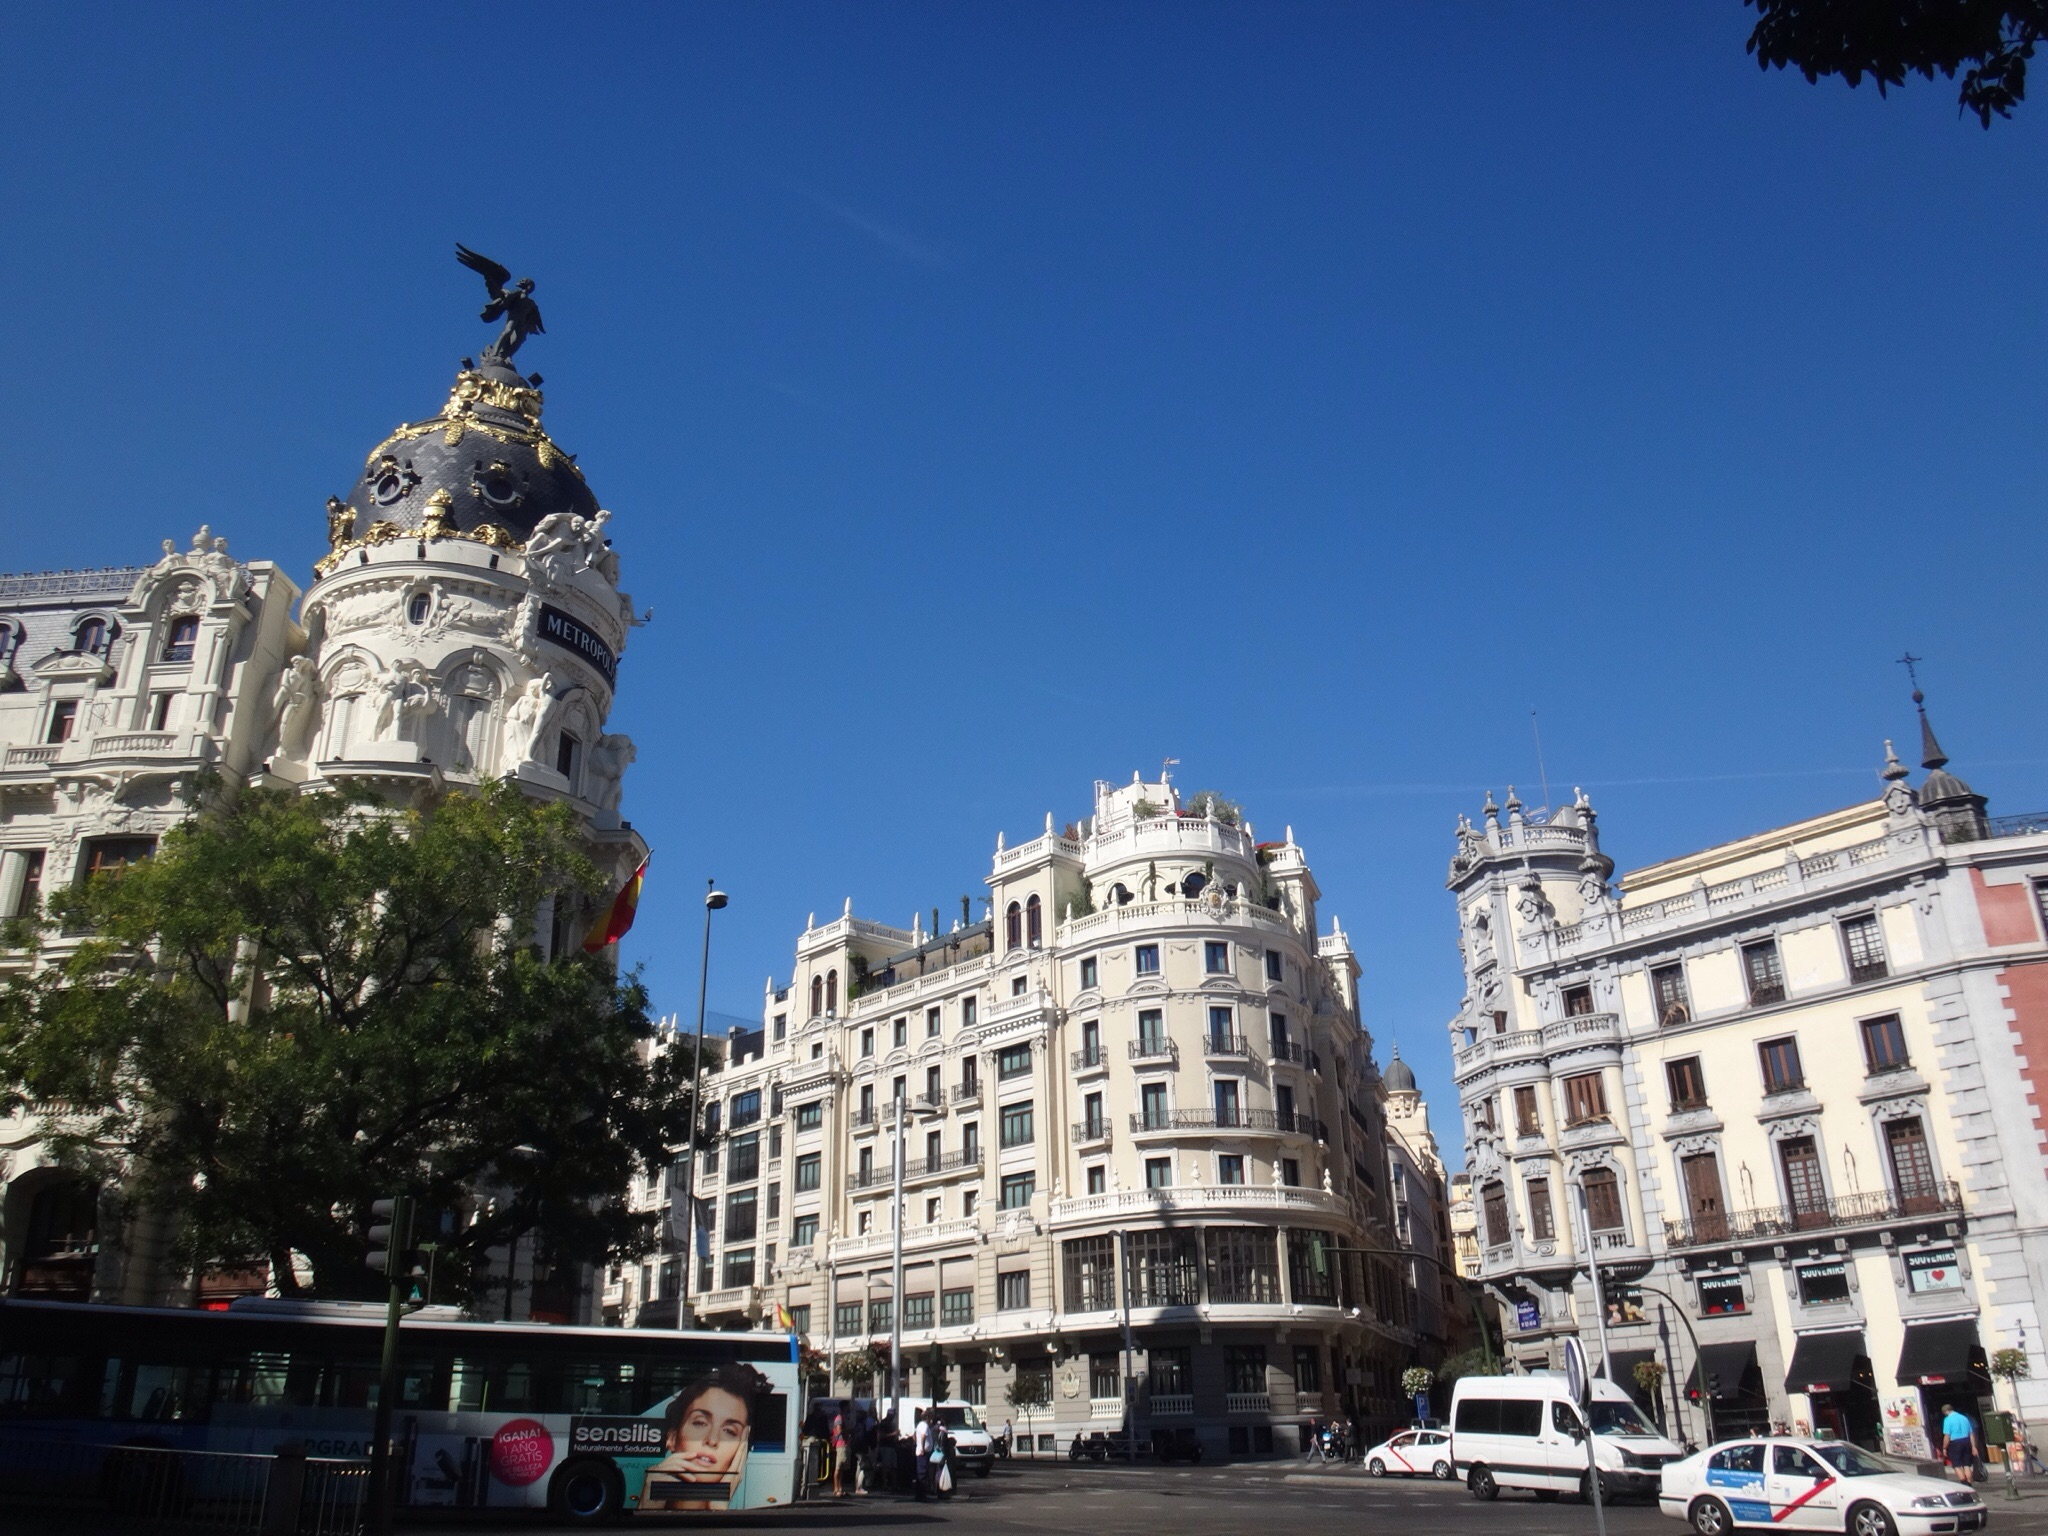 1910 to 1950 buildings along the Gran Via.